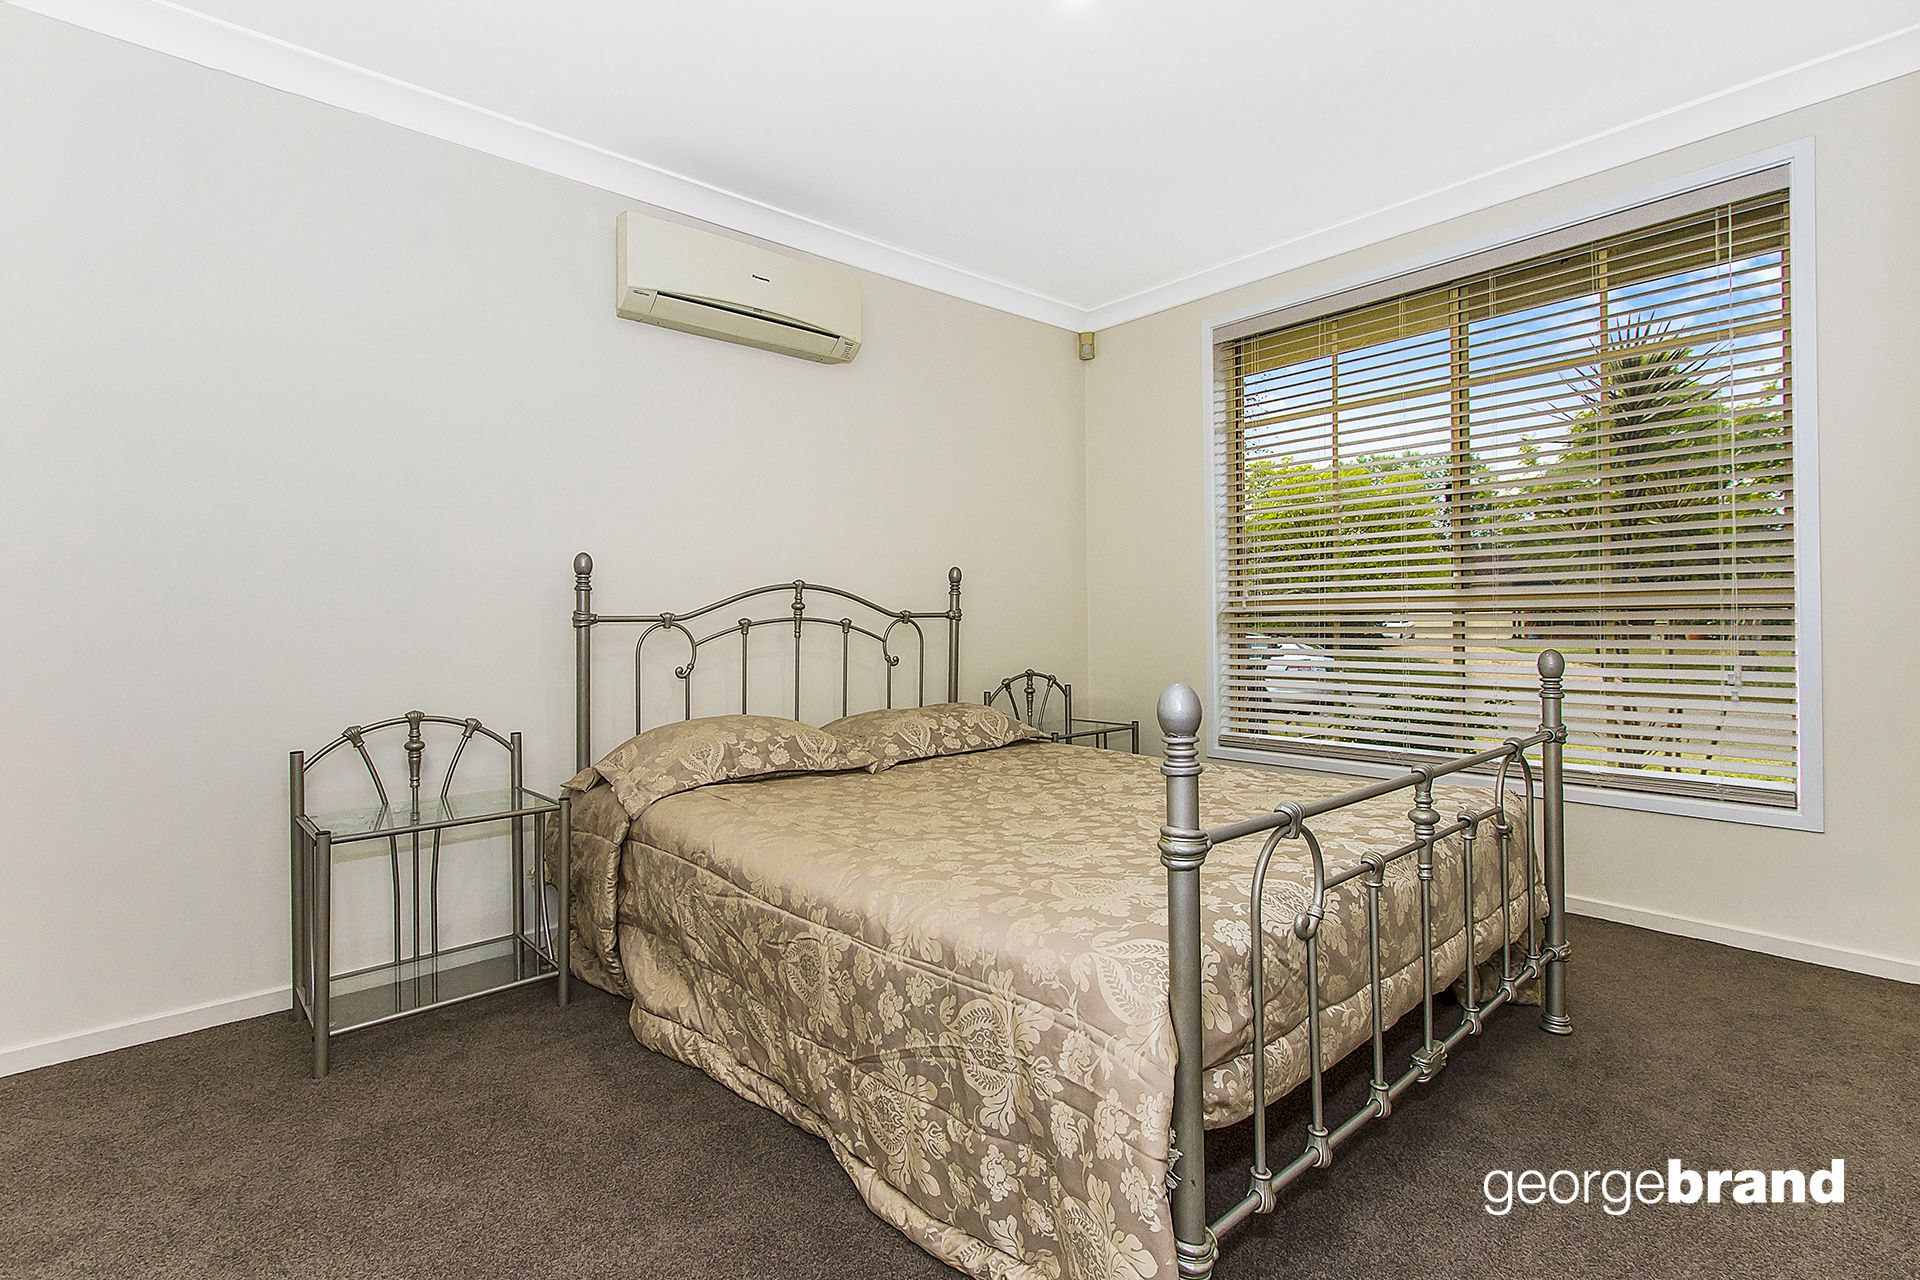 Kariong Real Estate: THE PERFECT START!